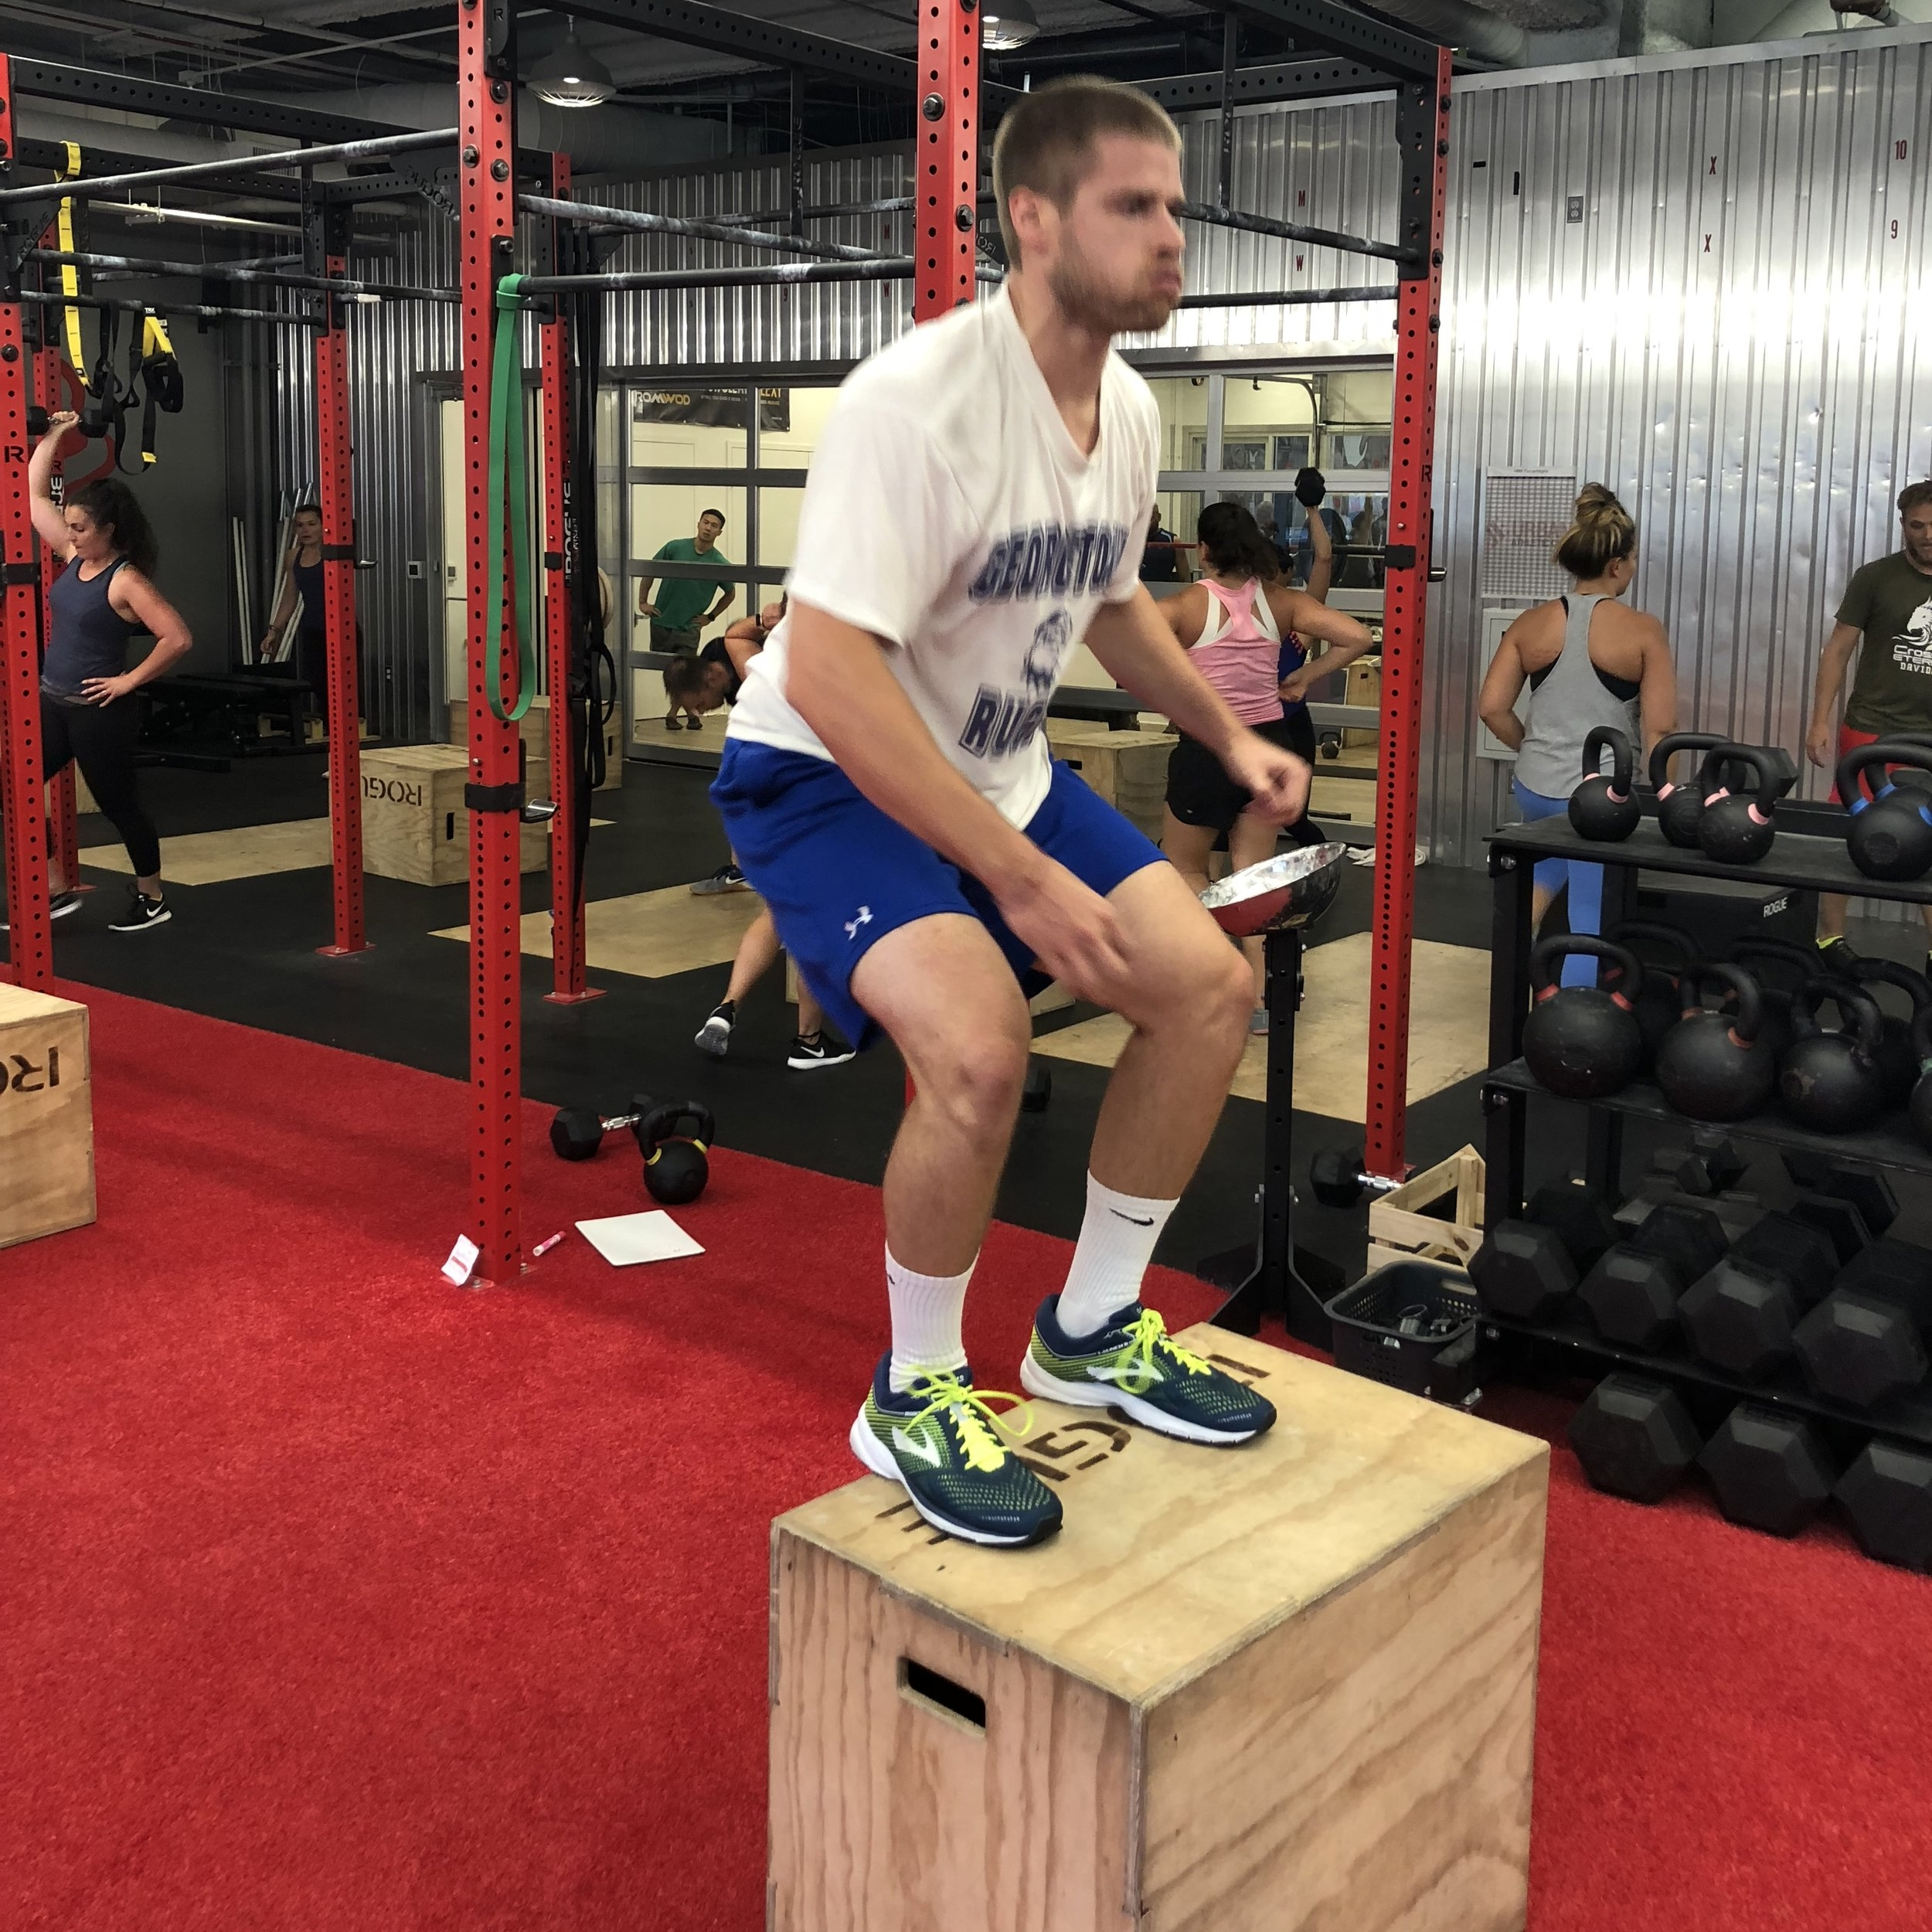 Fit Athlete - Unleash your inner athlete with FIT ATHLETE: a team-based, comprehensive workout combining athletic movements, body-weight movements, and strength training.